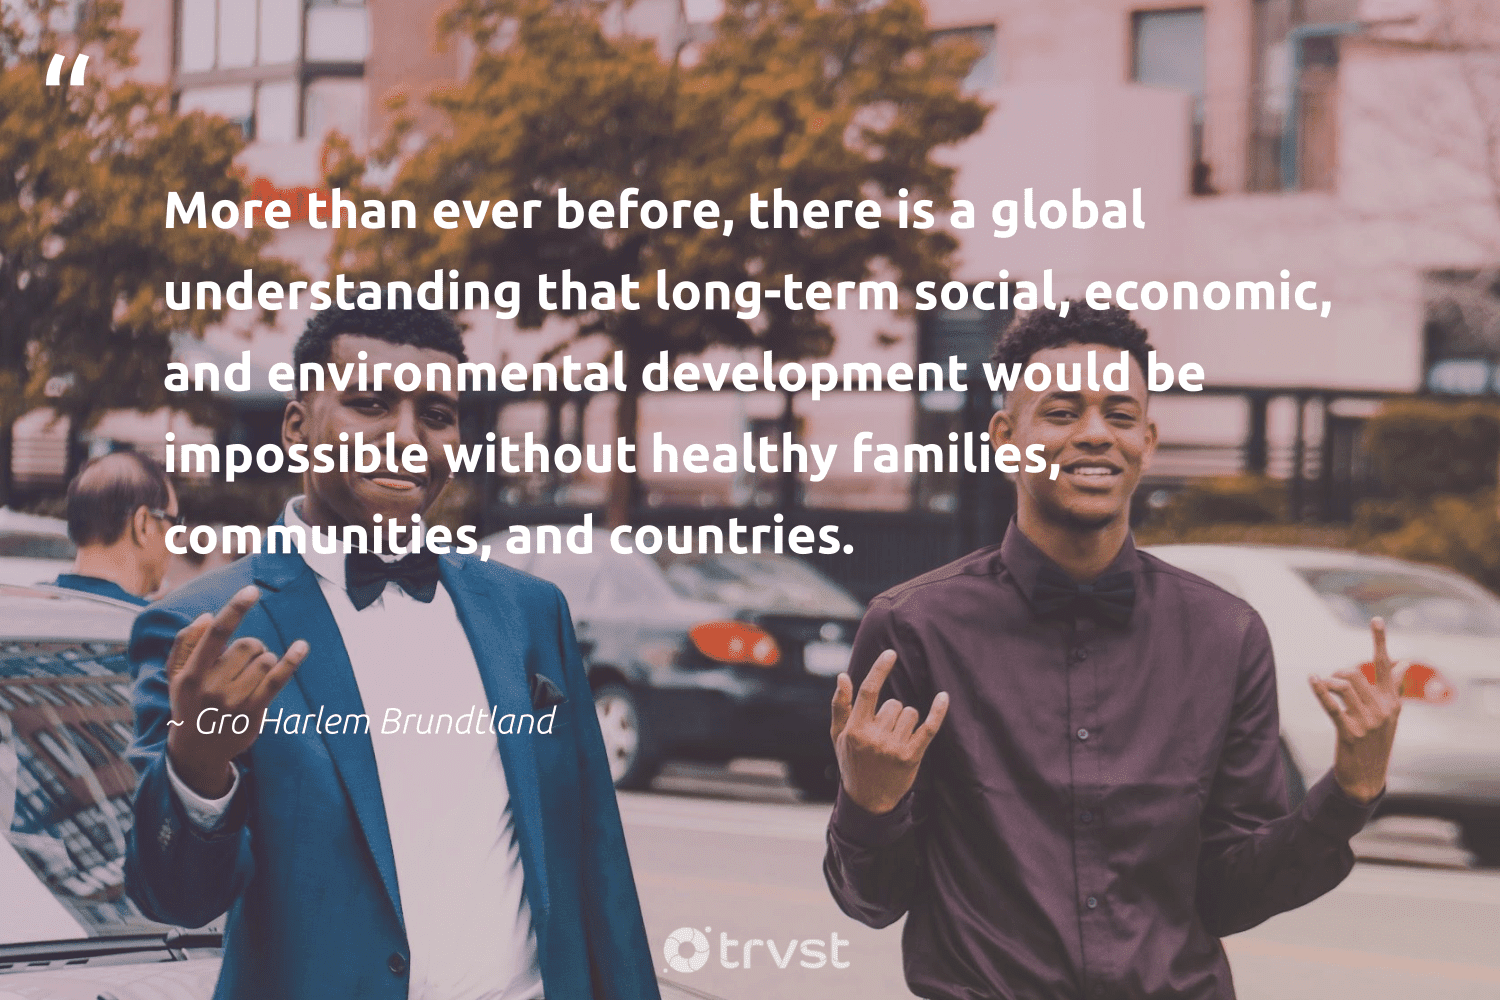 """""""More than ever before, there is a global understanding that long-term social, economic, and environmental development would be impossible without healthy families, communities, and countries.""""  - Gro Harlem Brundtland #trvst #quotes #environmental #communities #families #healthy #development #healthylife #socialgood #togetherwecan #collectiveaction #healthyliving"""